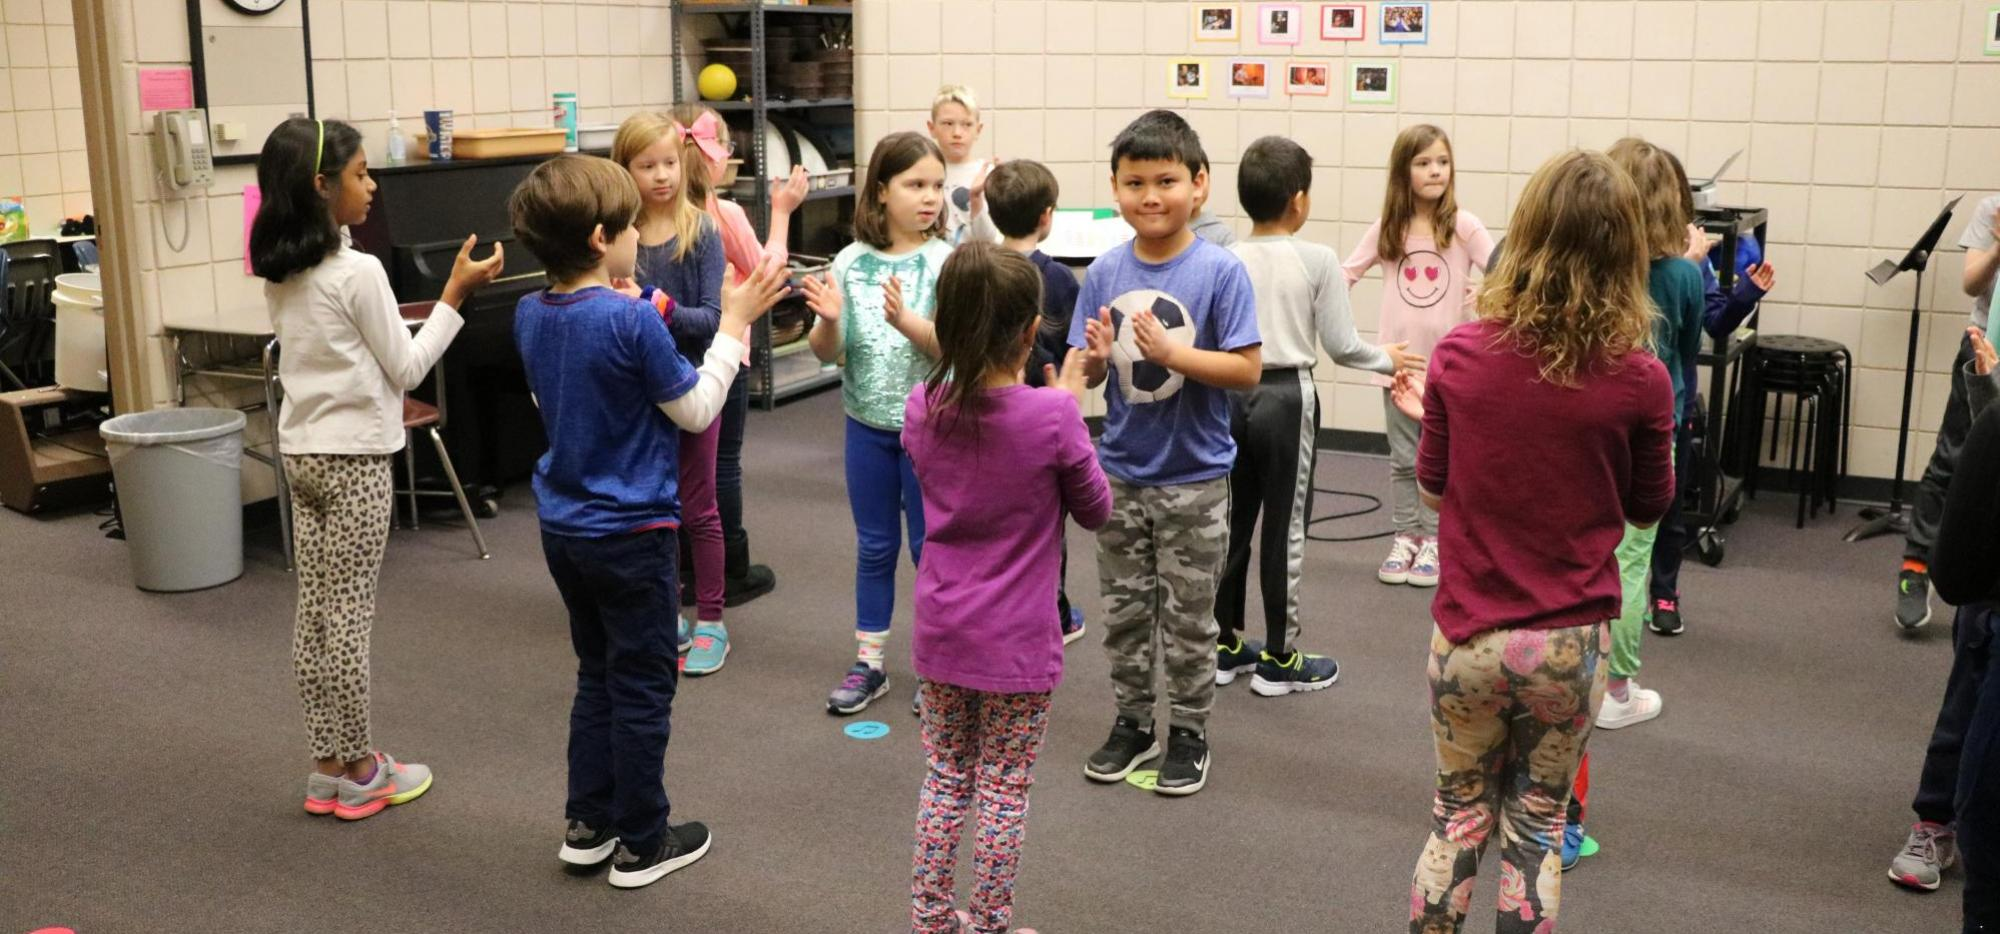 Students dancing in music class